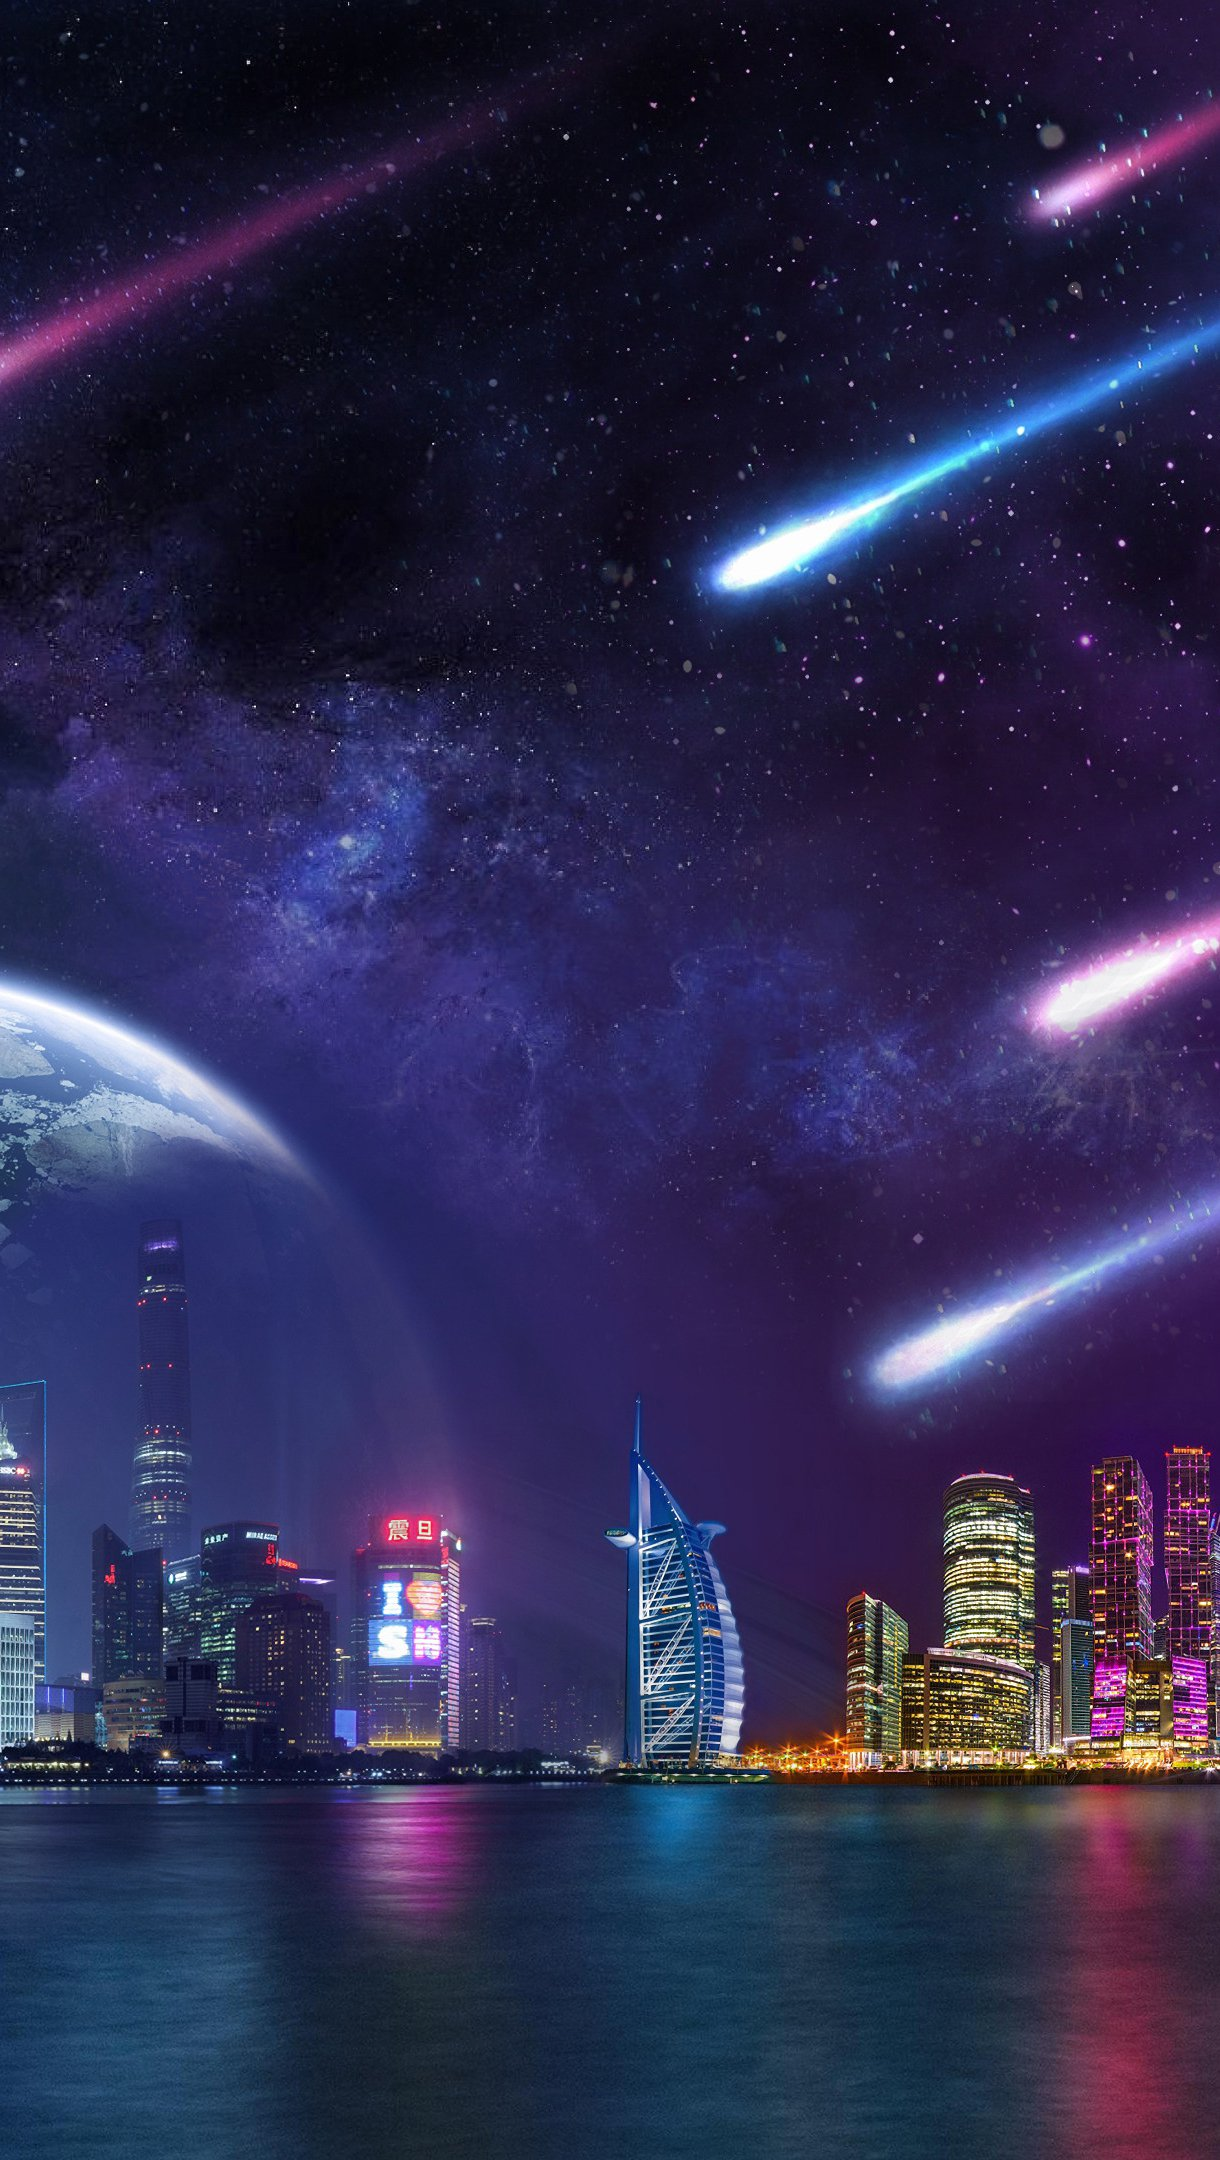 Wallpaper Comet and planets in digital Night city scenery Vertical